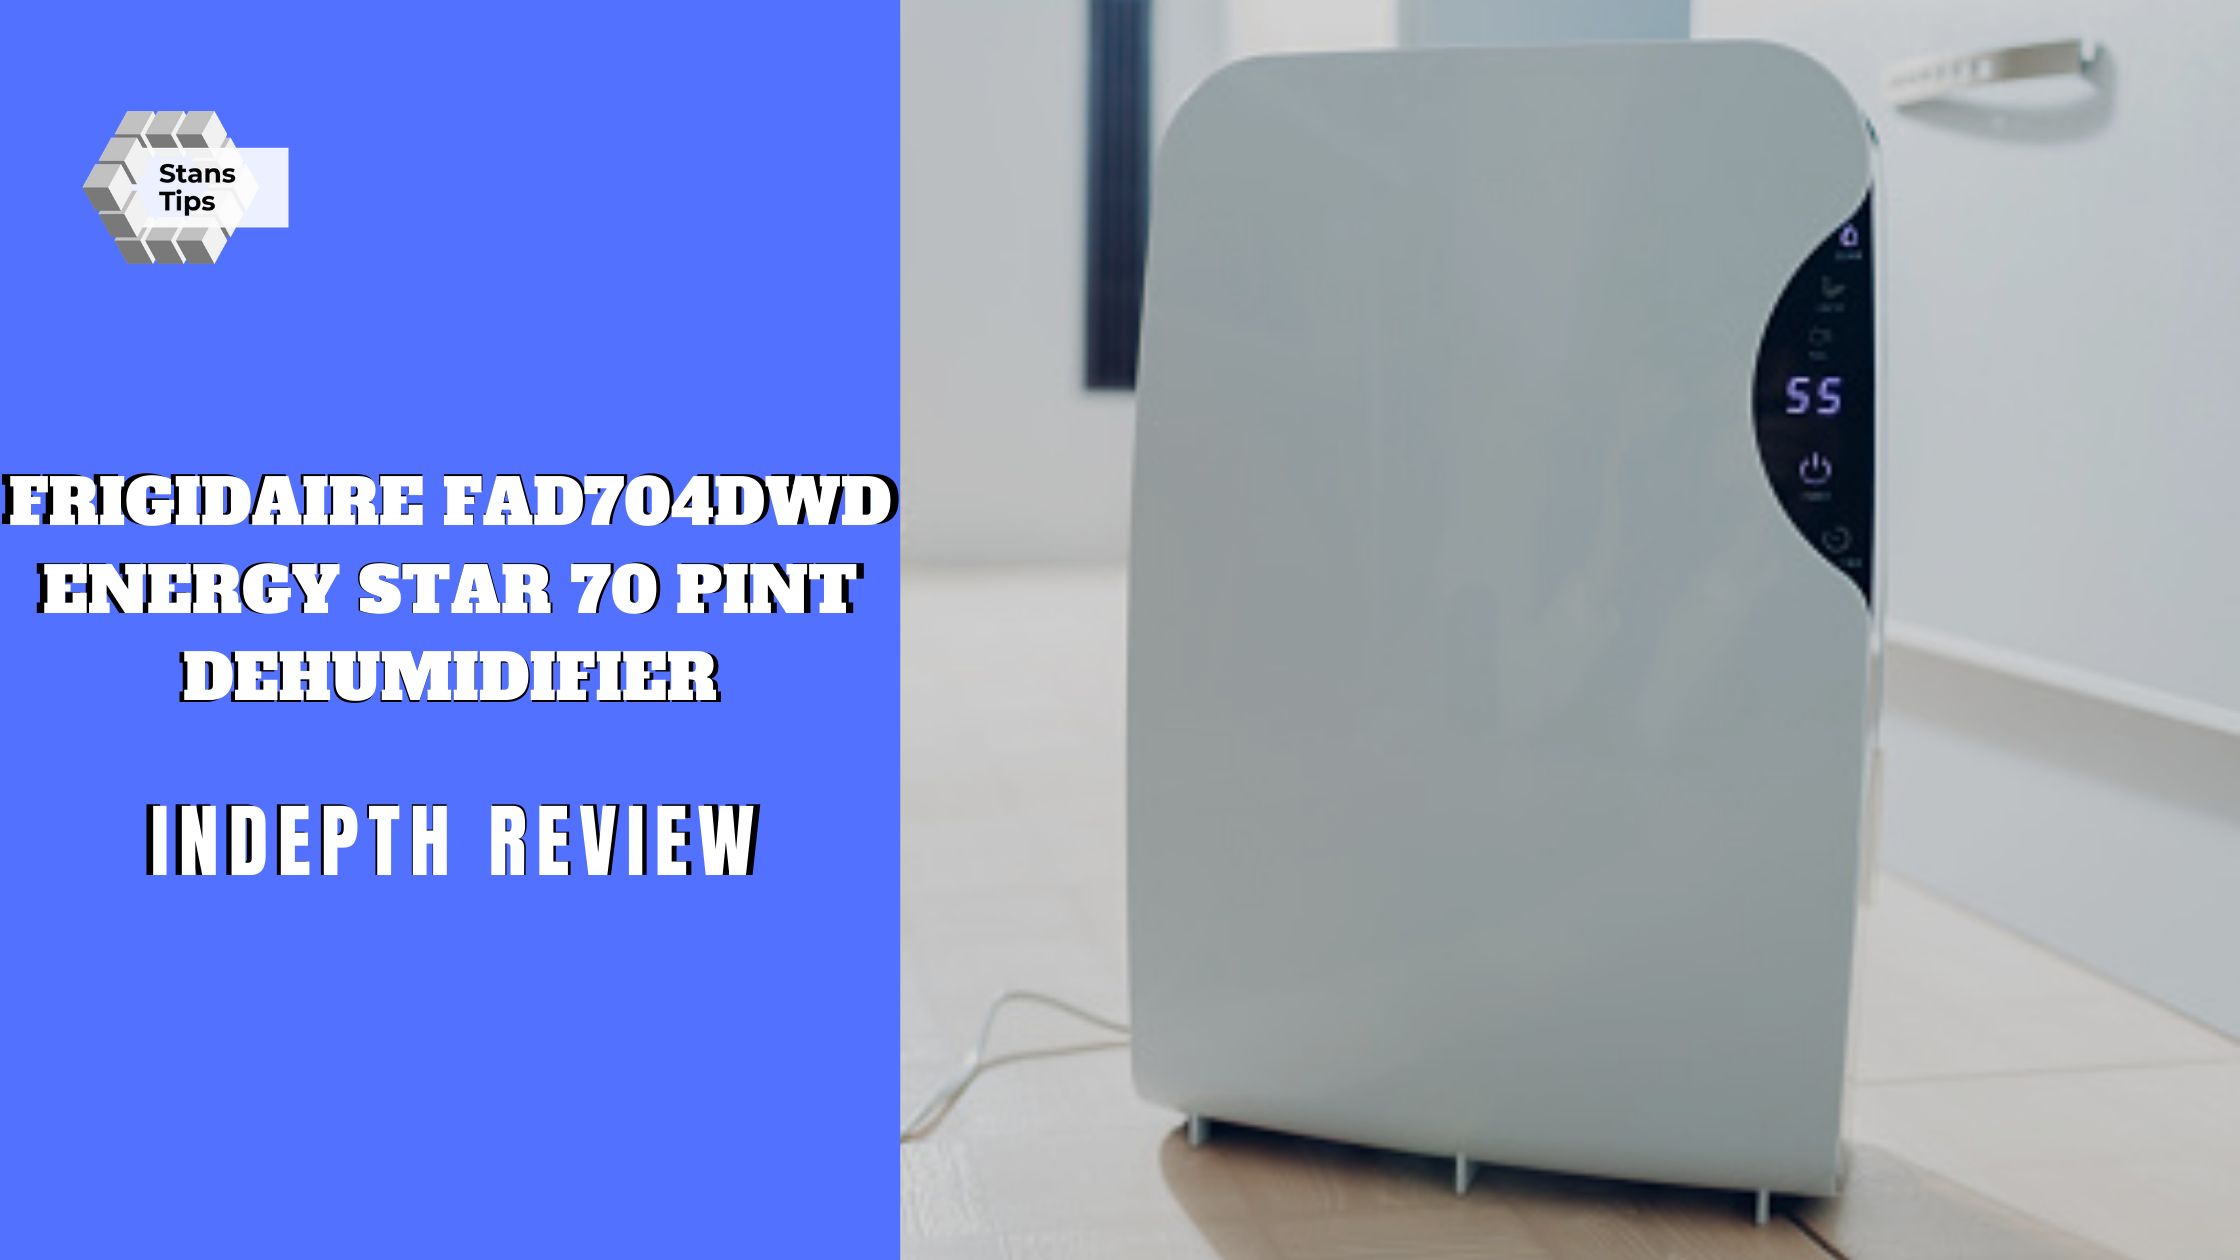 Frigidaire fad704dwd energy star 70 pint dehumidifier review